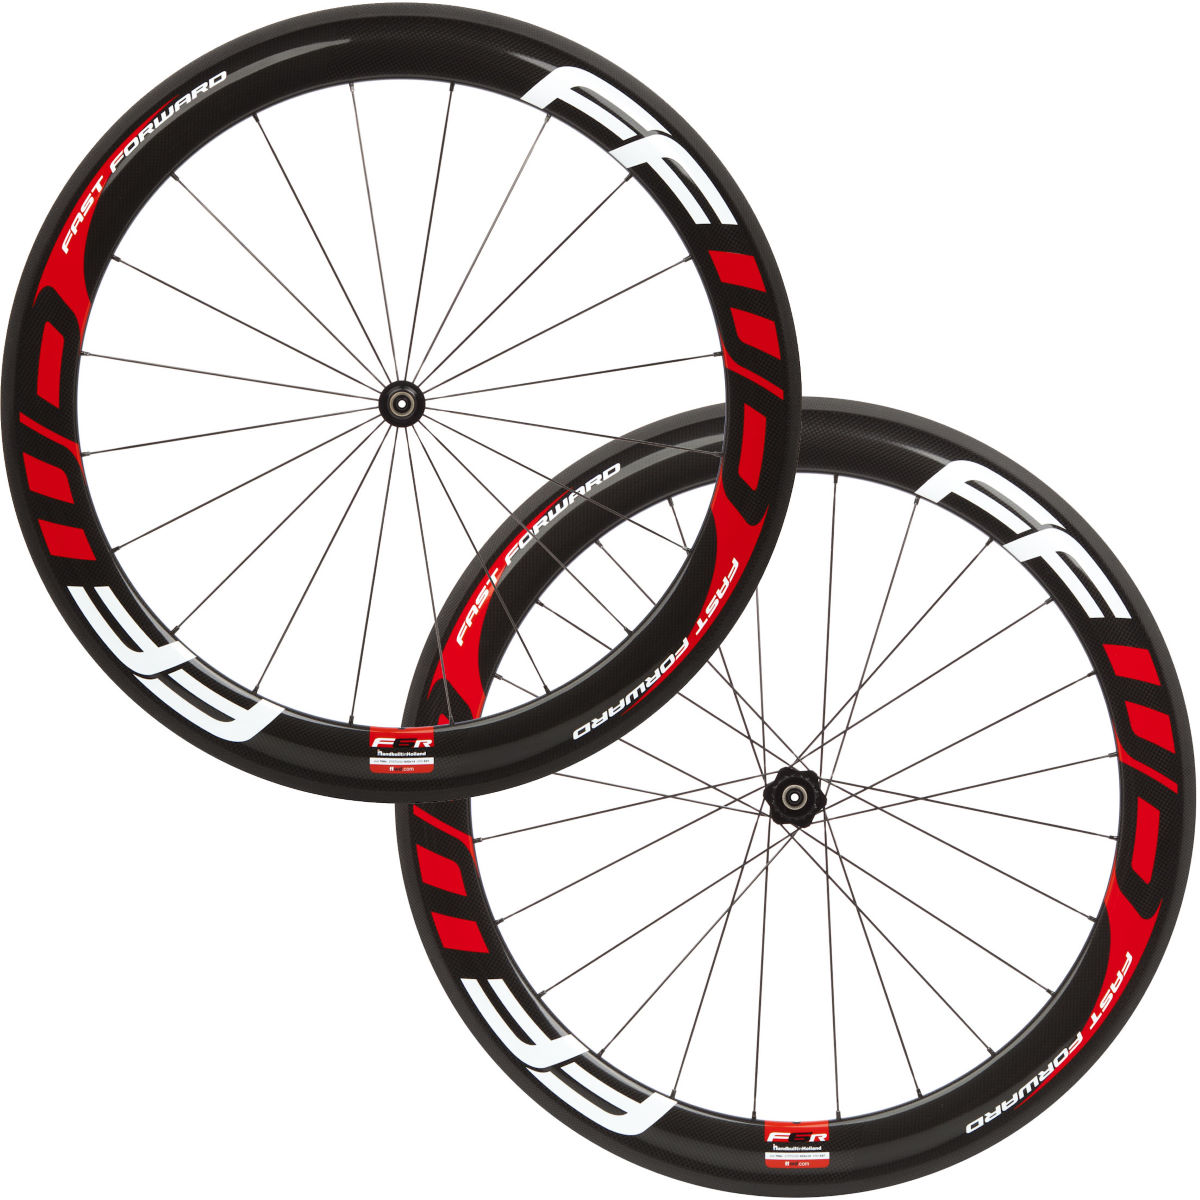 Fast Forward F6R Full Carbon Clincher DT350 60mm SP Wheelset Wheel Sets